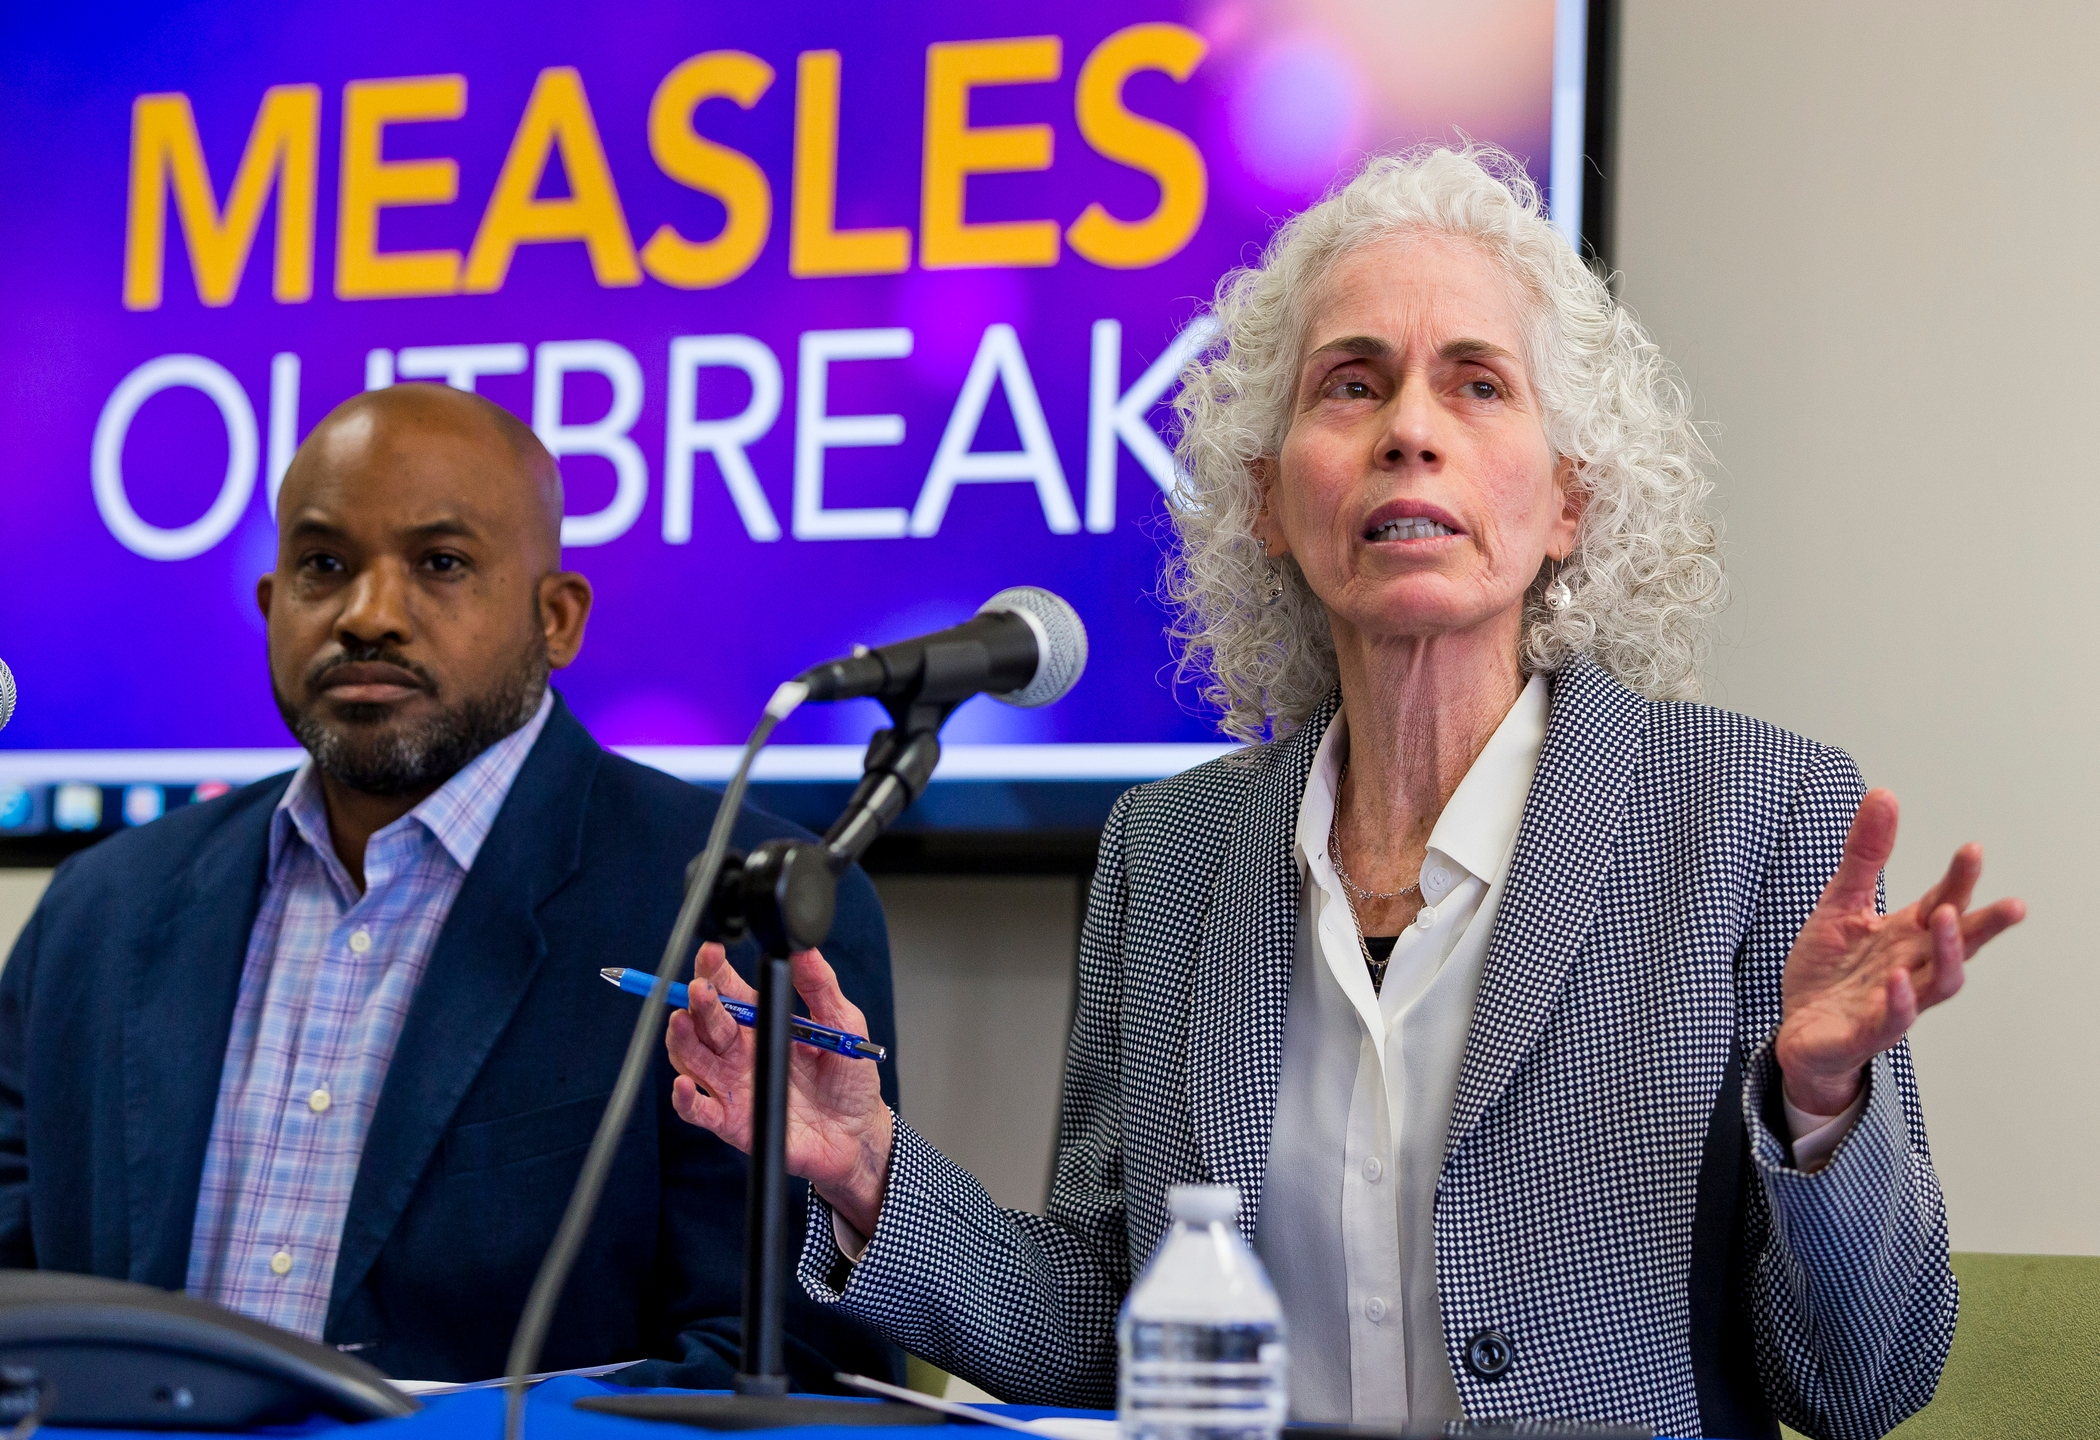 Measles California_1556330292570